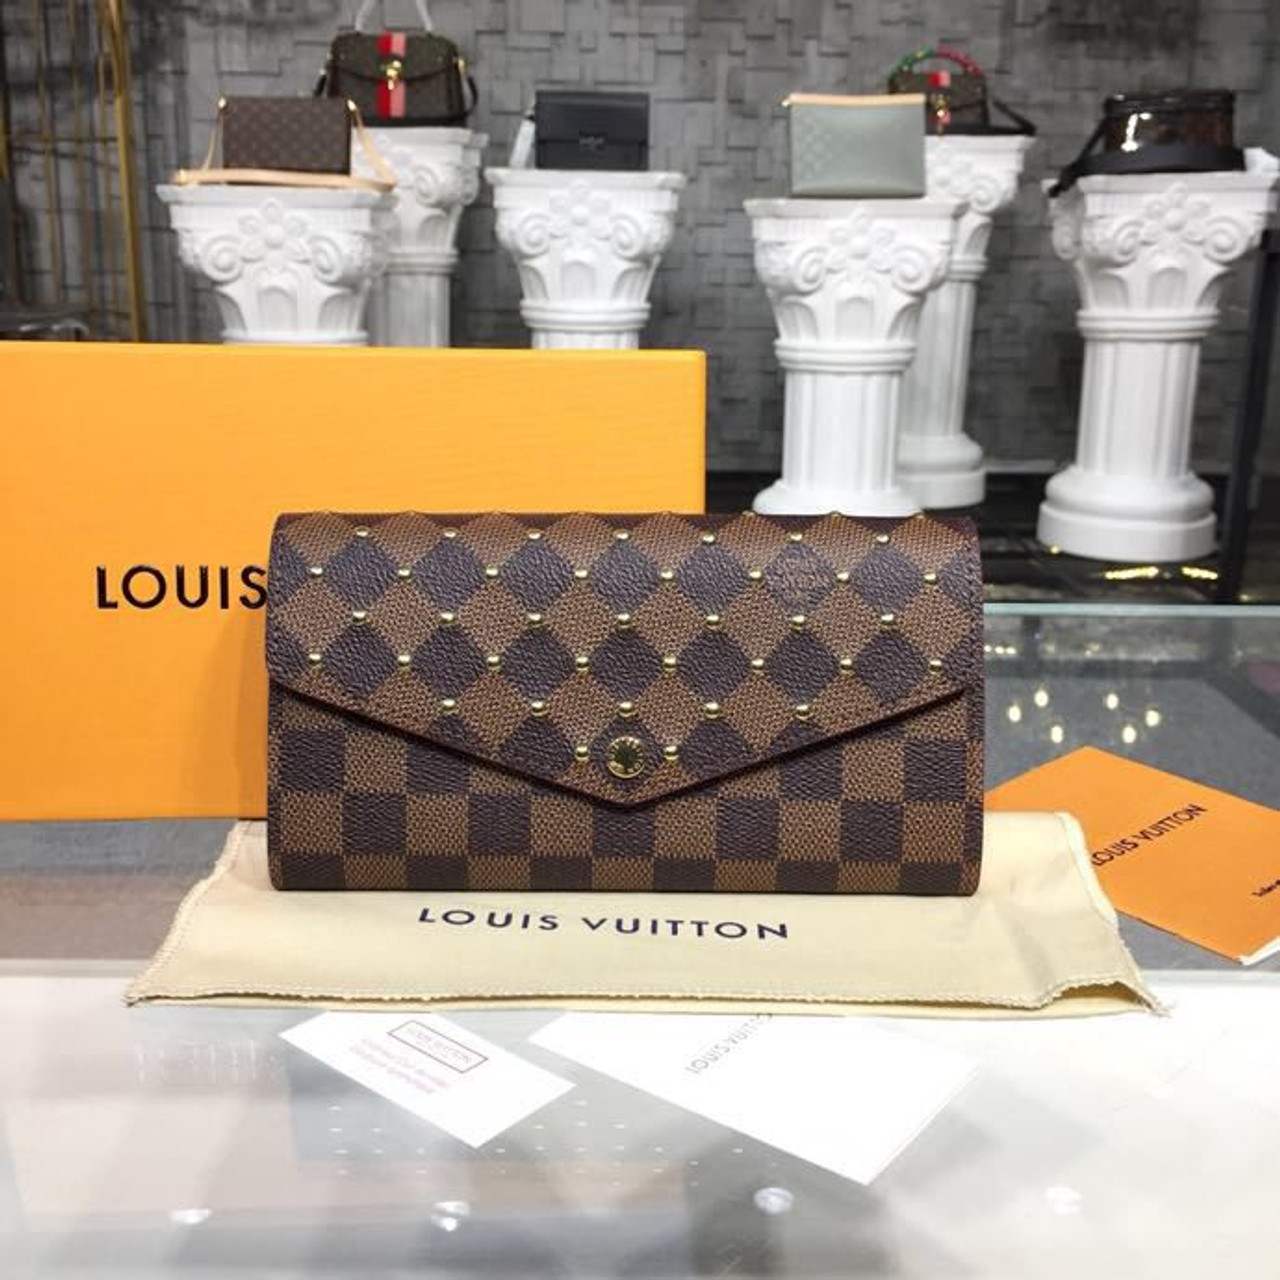 f08cdf5175ff Louis Vuitton Studded Sarah Wallet Monogram Canvas Fall Winter 2018  Collection M60531